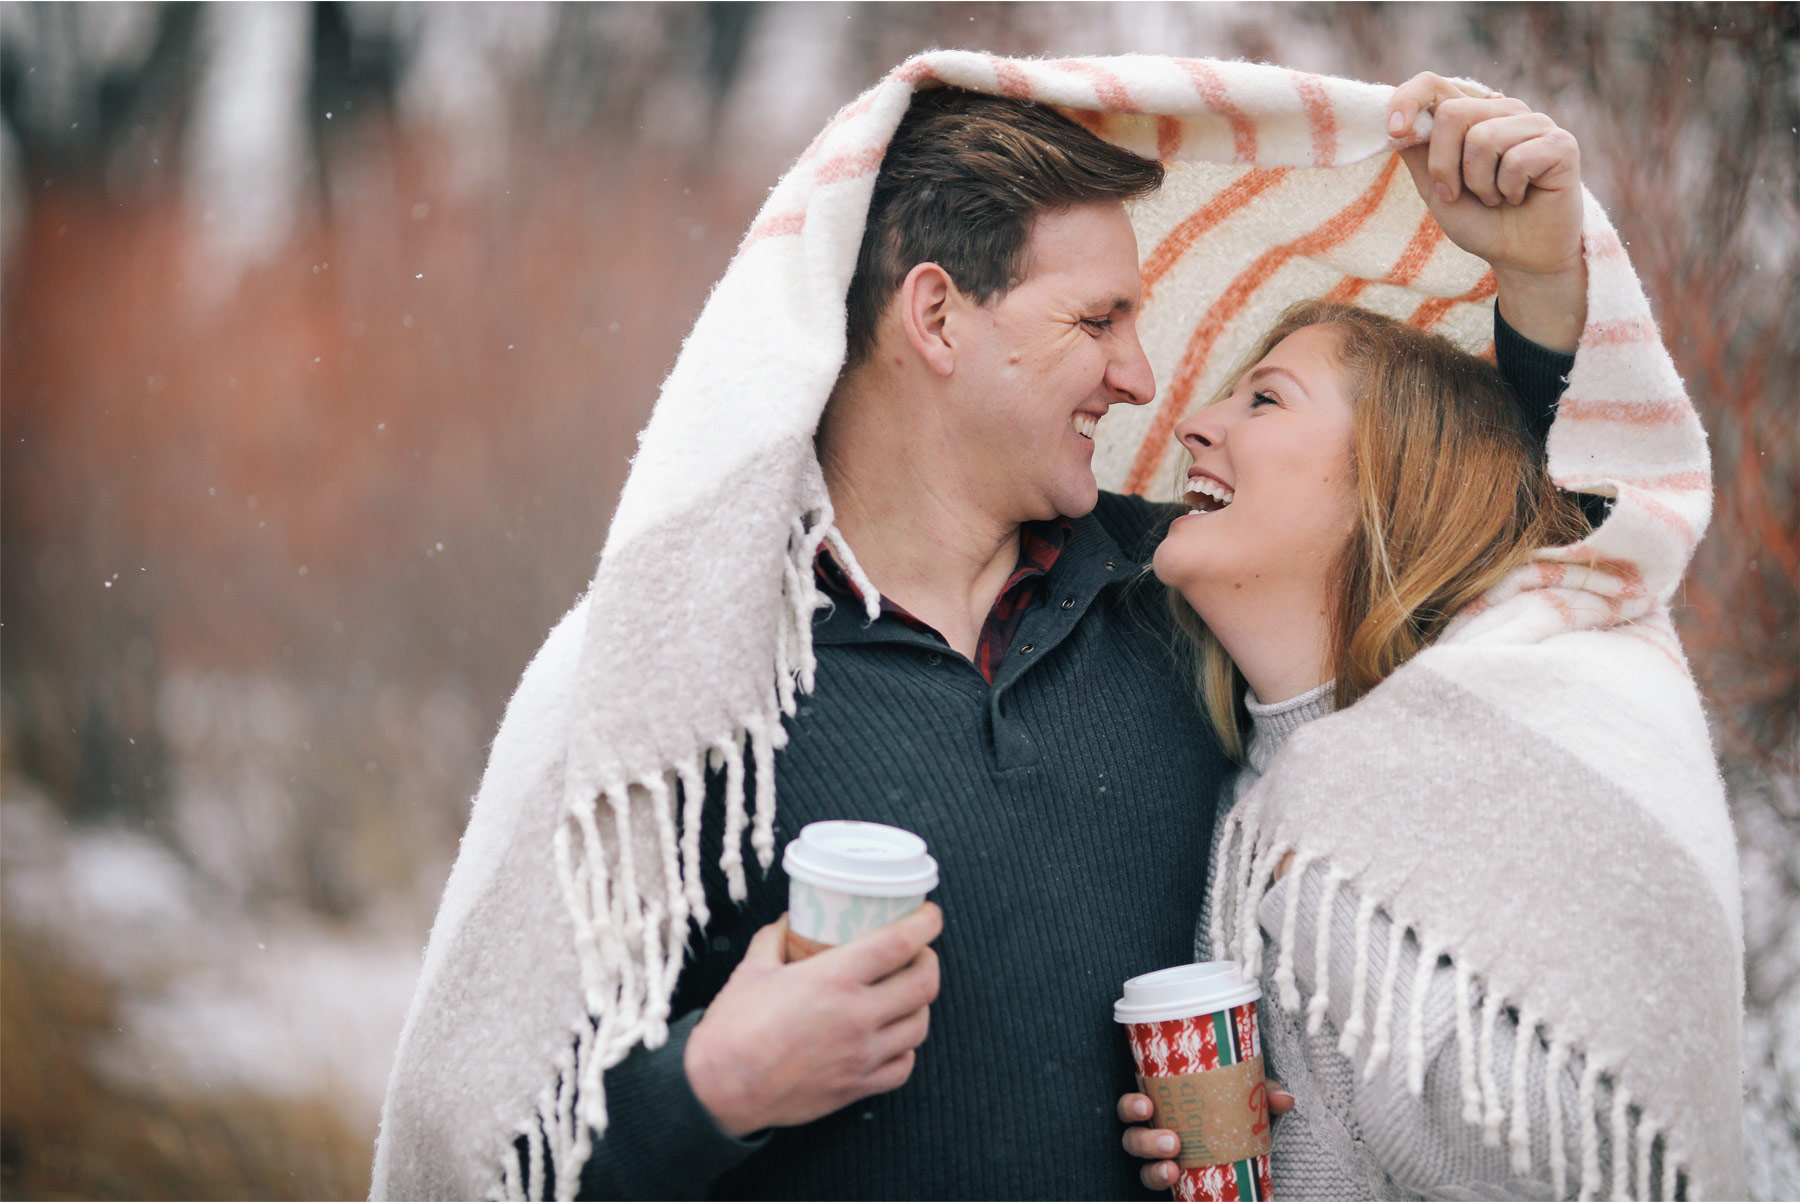 04-Vick-Photography-Engagement-Session-Winter-Outdoor-Couple-Blanket-Coffee-Veronica-and-Tyler.jpg